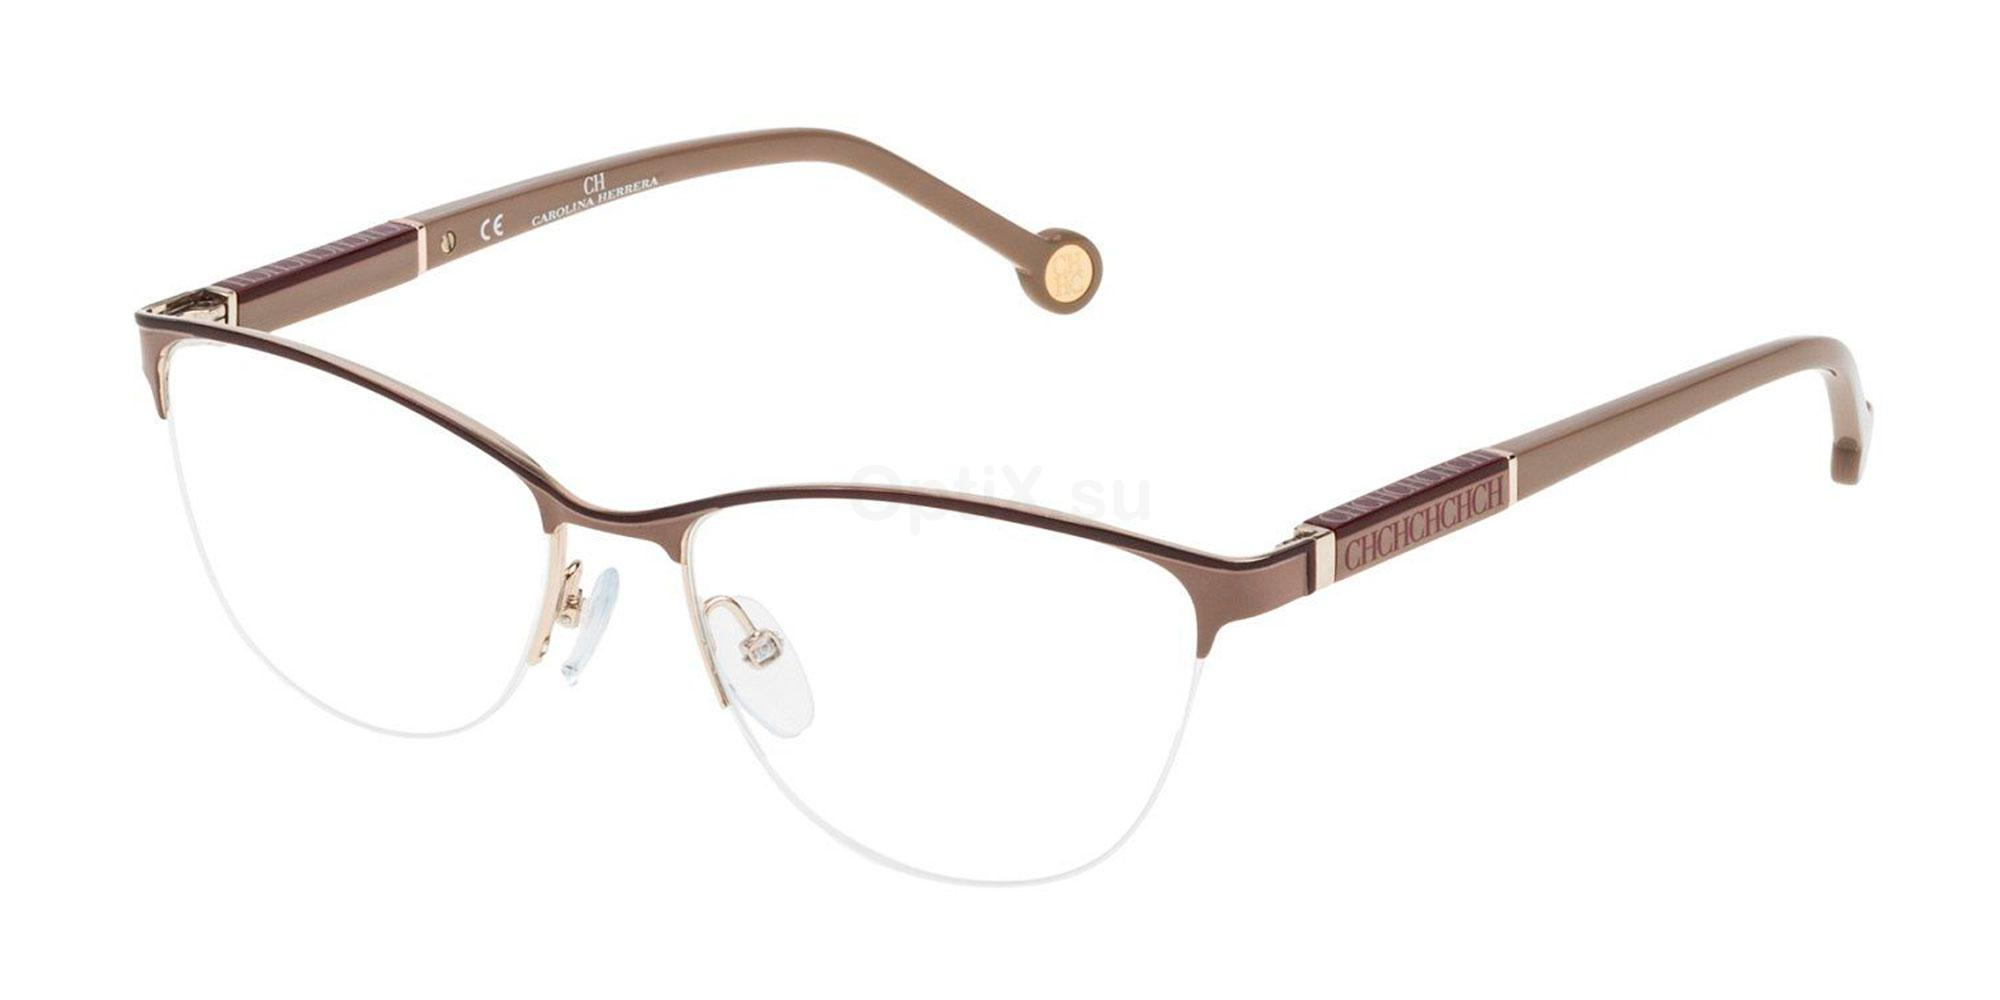 0484 VHE079 Glasses, CH Carolina Herrera